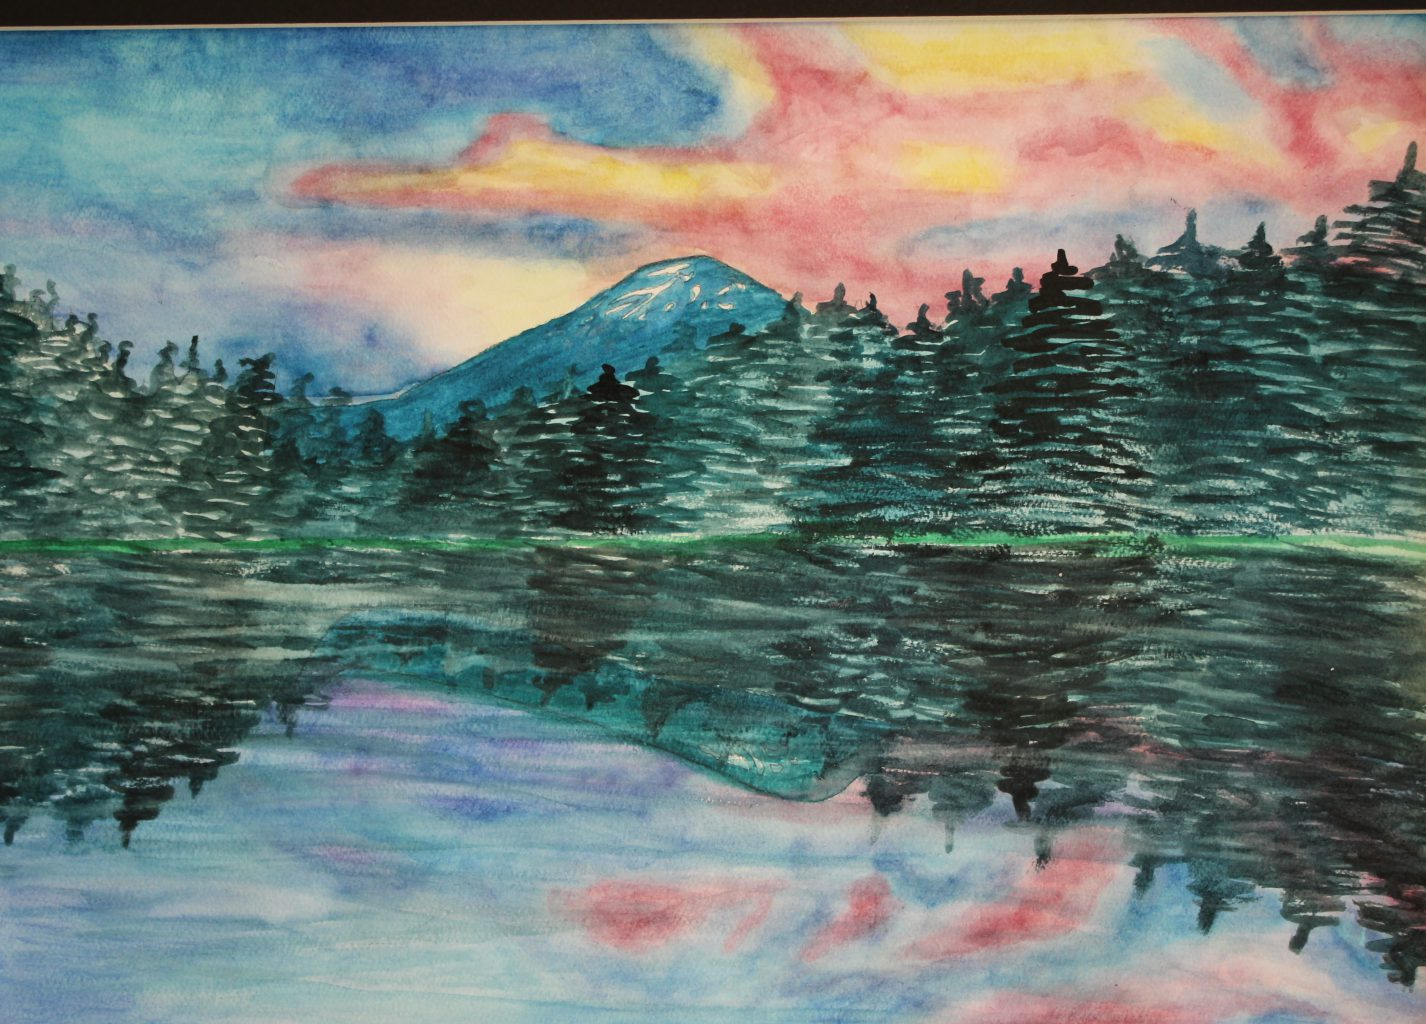 a colorful landscape scene is drawn with pine trees reflecting in a lake and a sunset sky